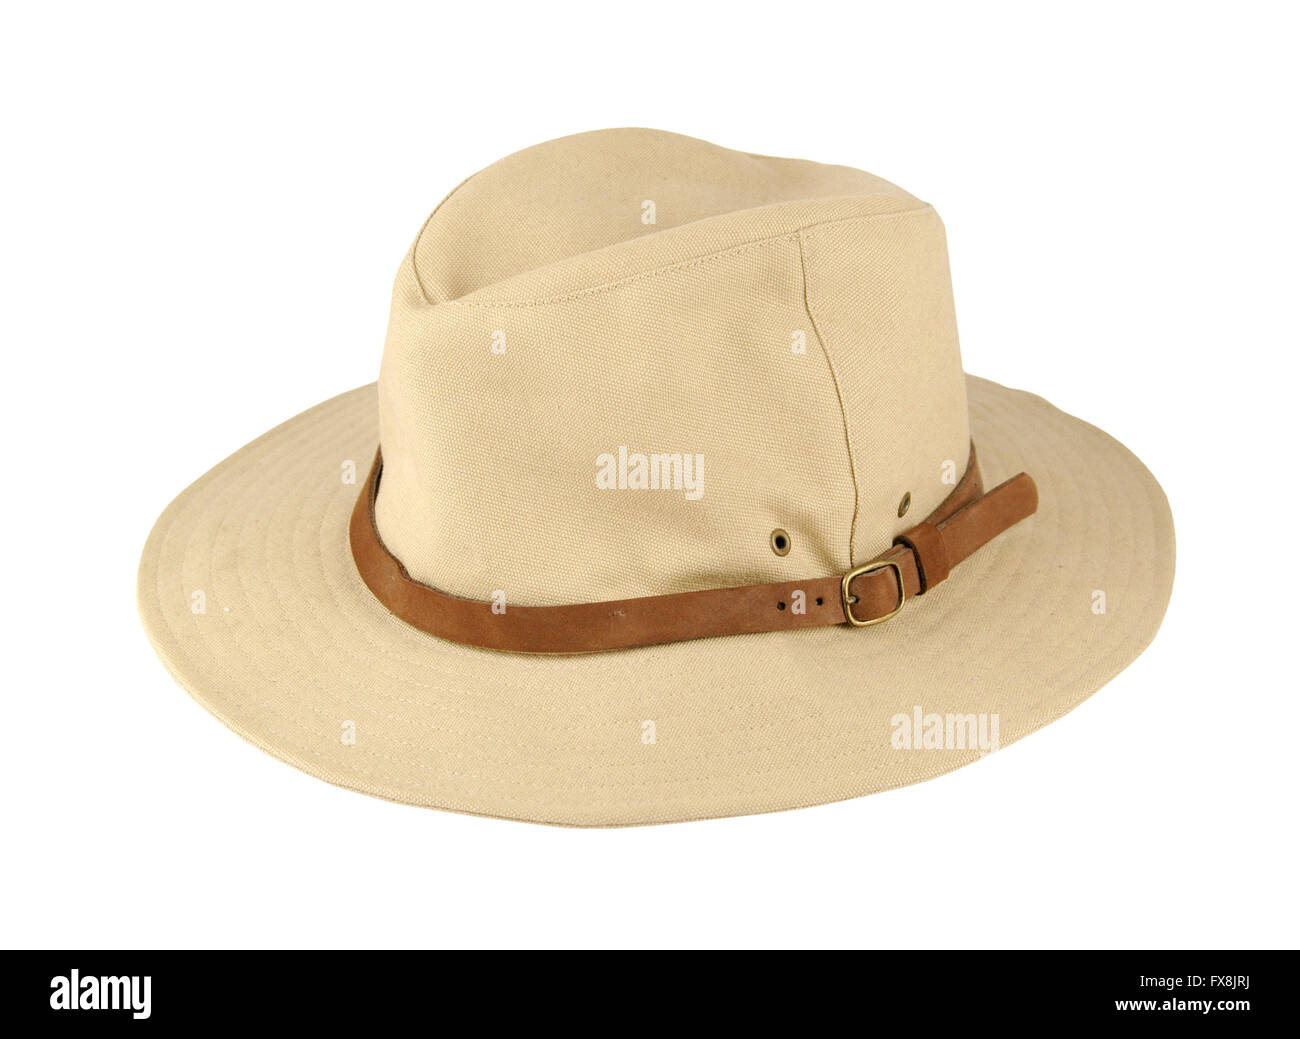 Hat with leather chin strap over wide hat brim - Stock Image ccbab0f91a43